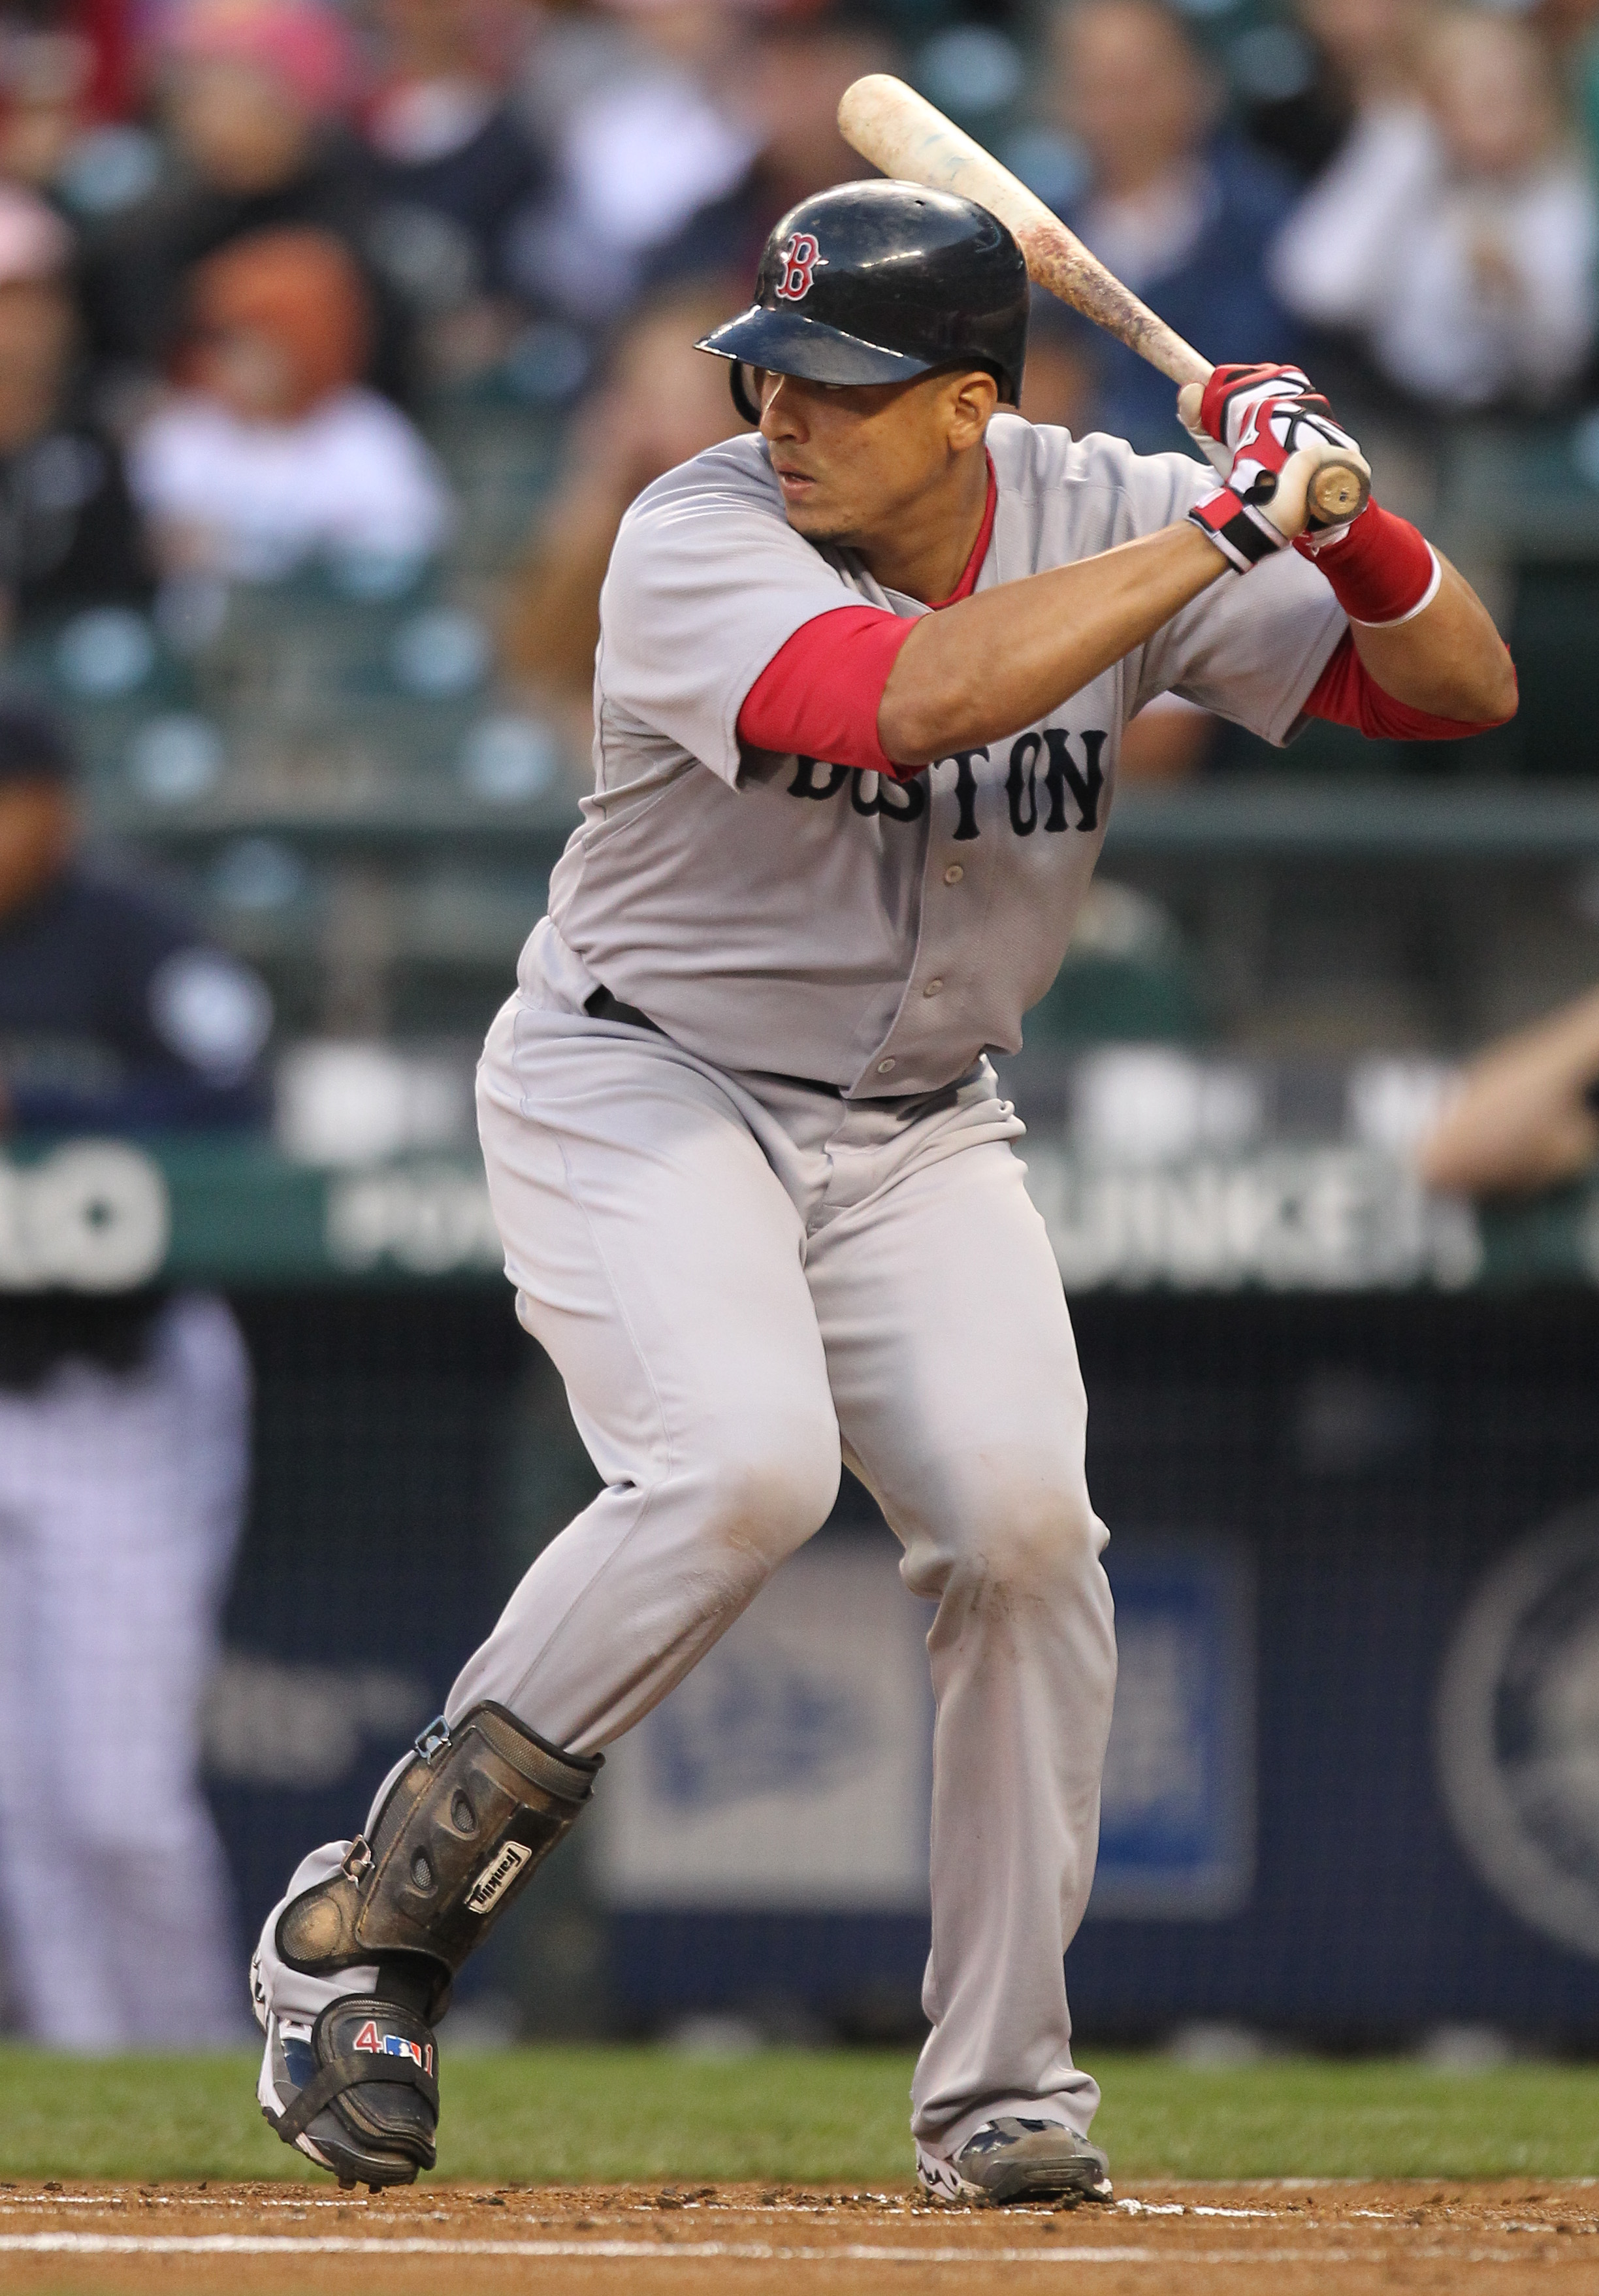 V-Mart is 31, and catchers over 30 usually break down quickly.